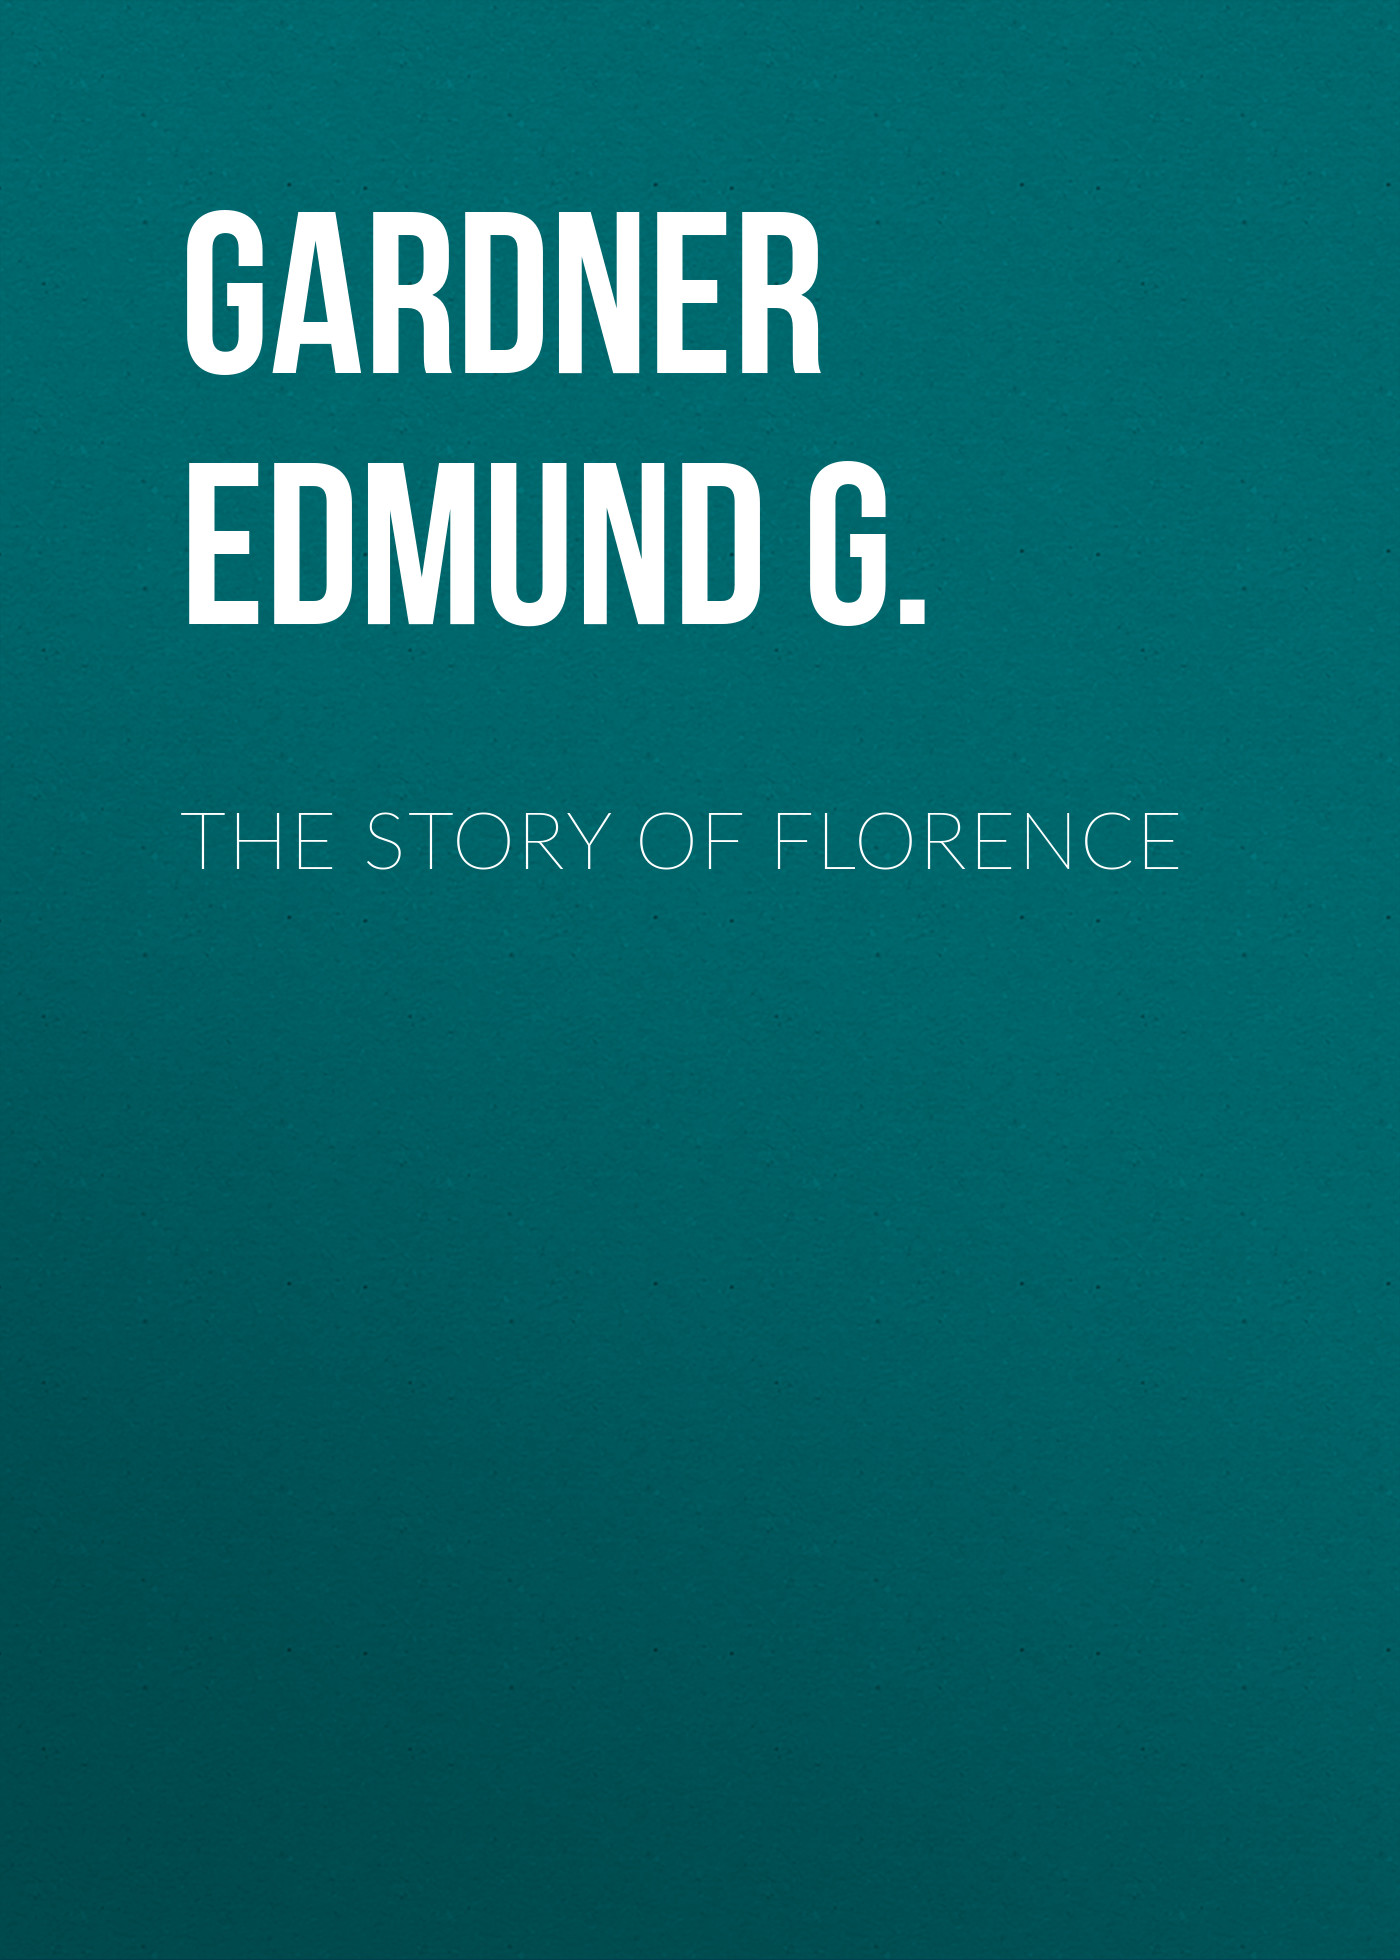 Gardner Edmund G. The Story of Florence gardner edmund g the story of siena and san gimignano